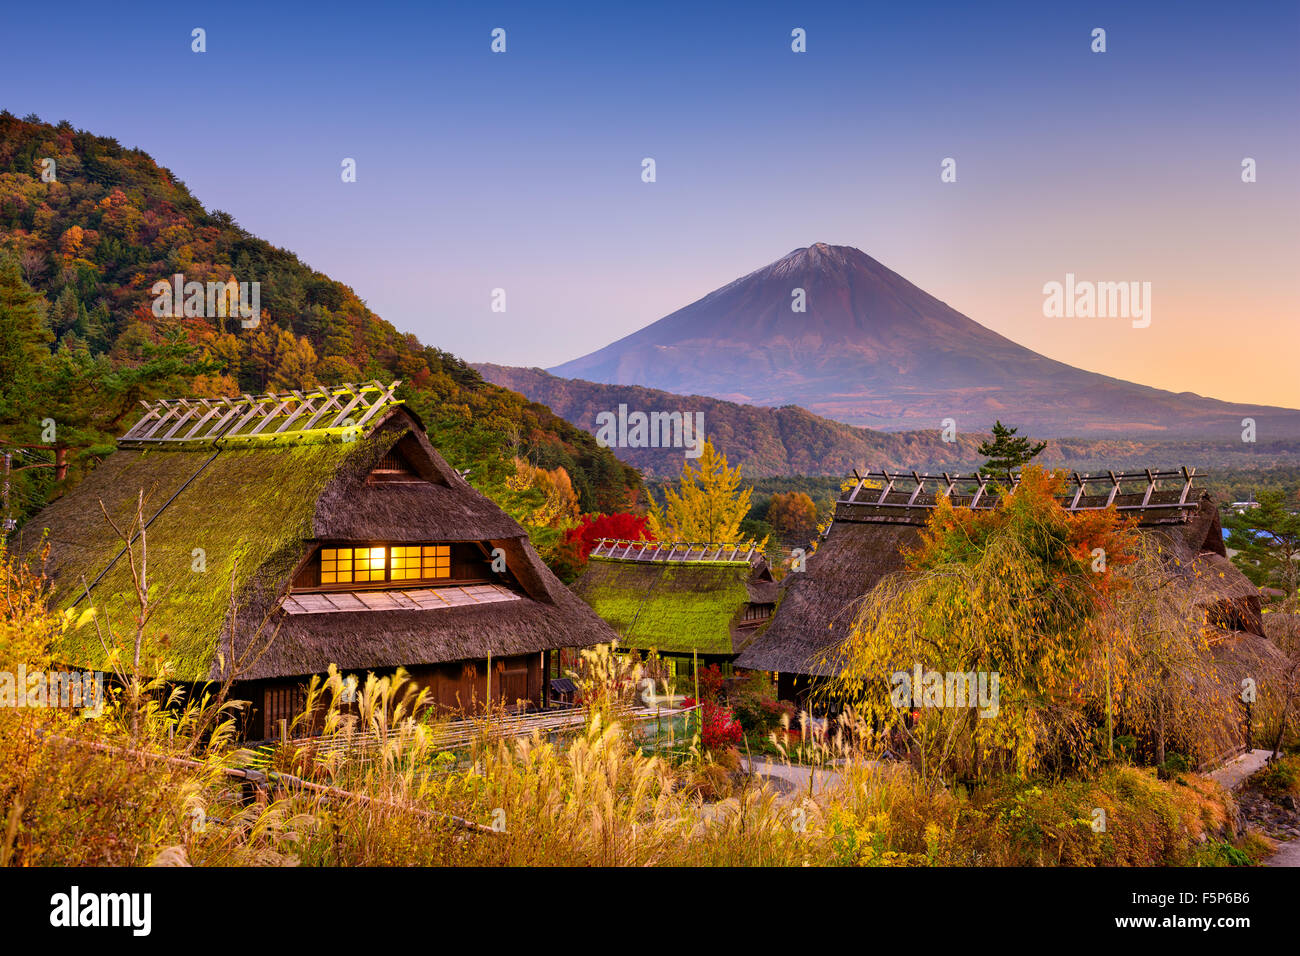 Mount Fuji, Japan viewed from a historic village. - Stock Image